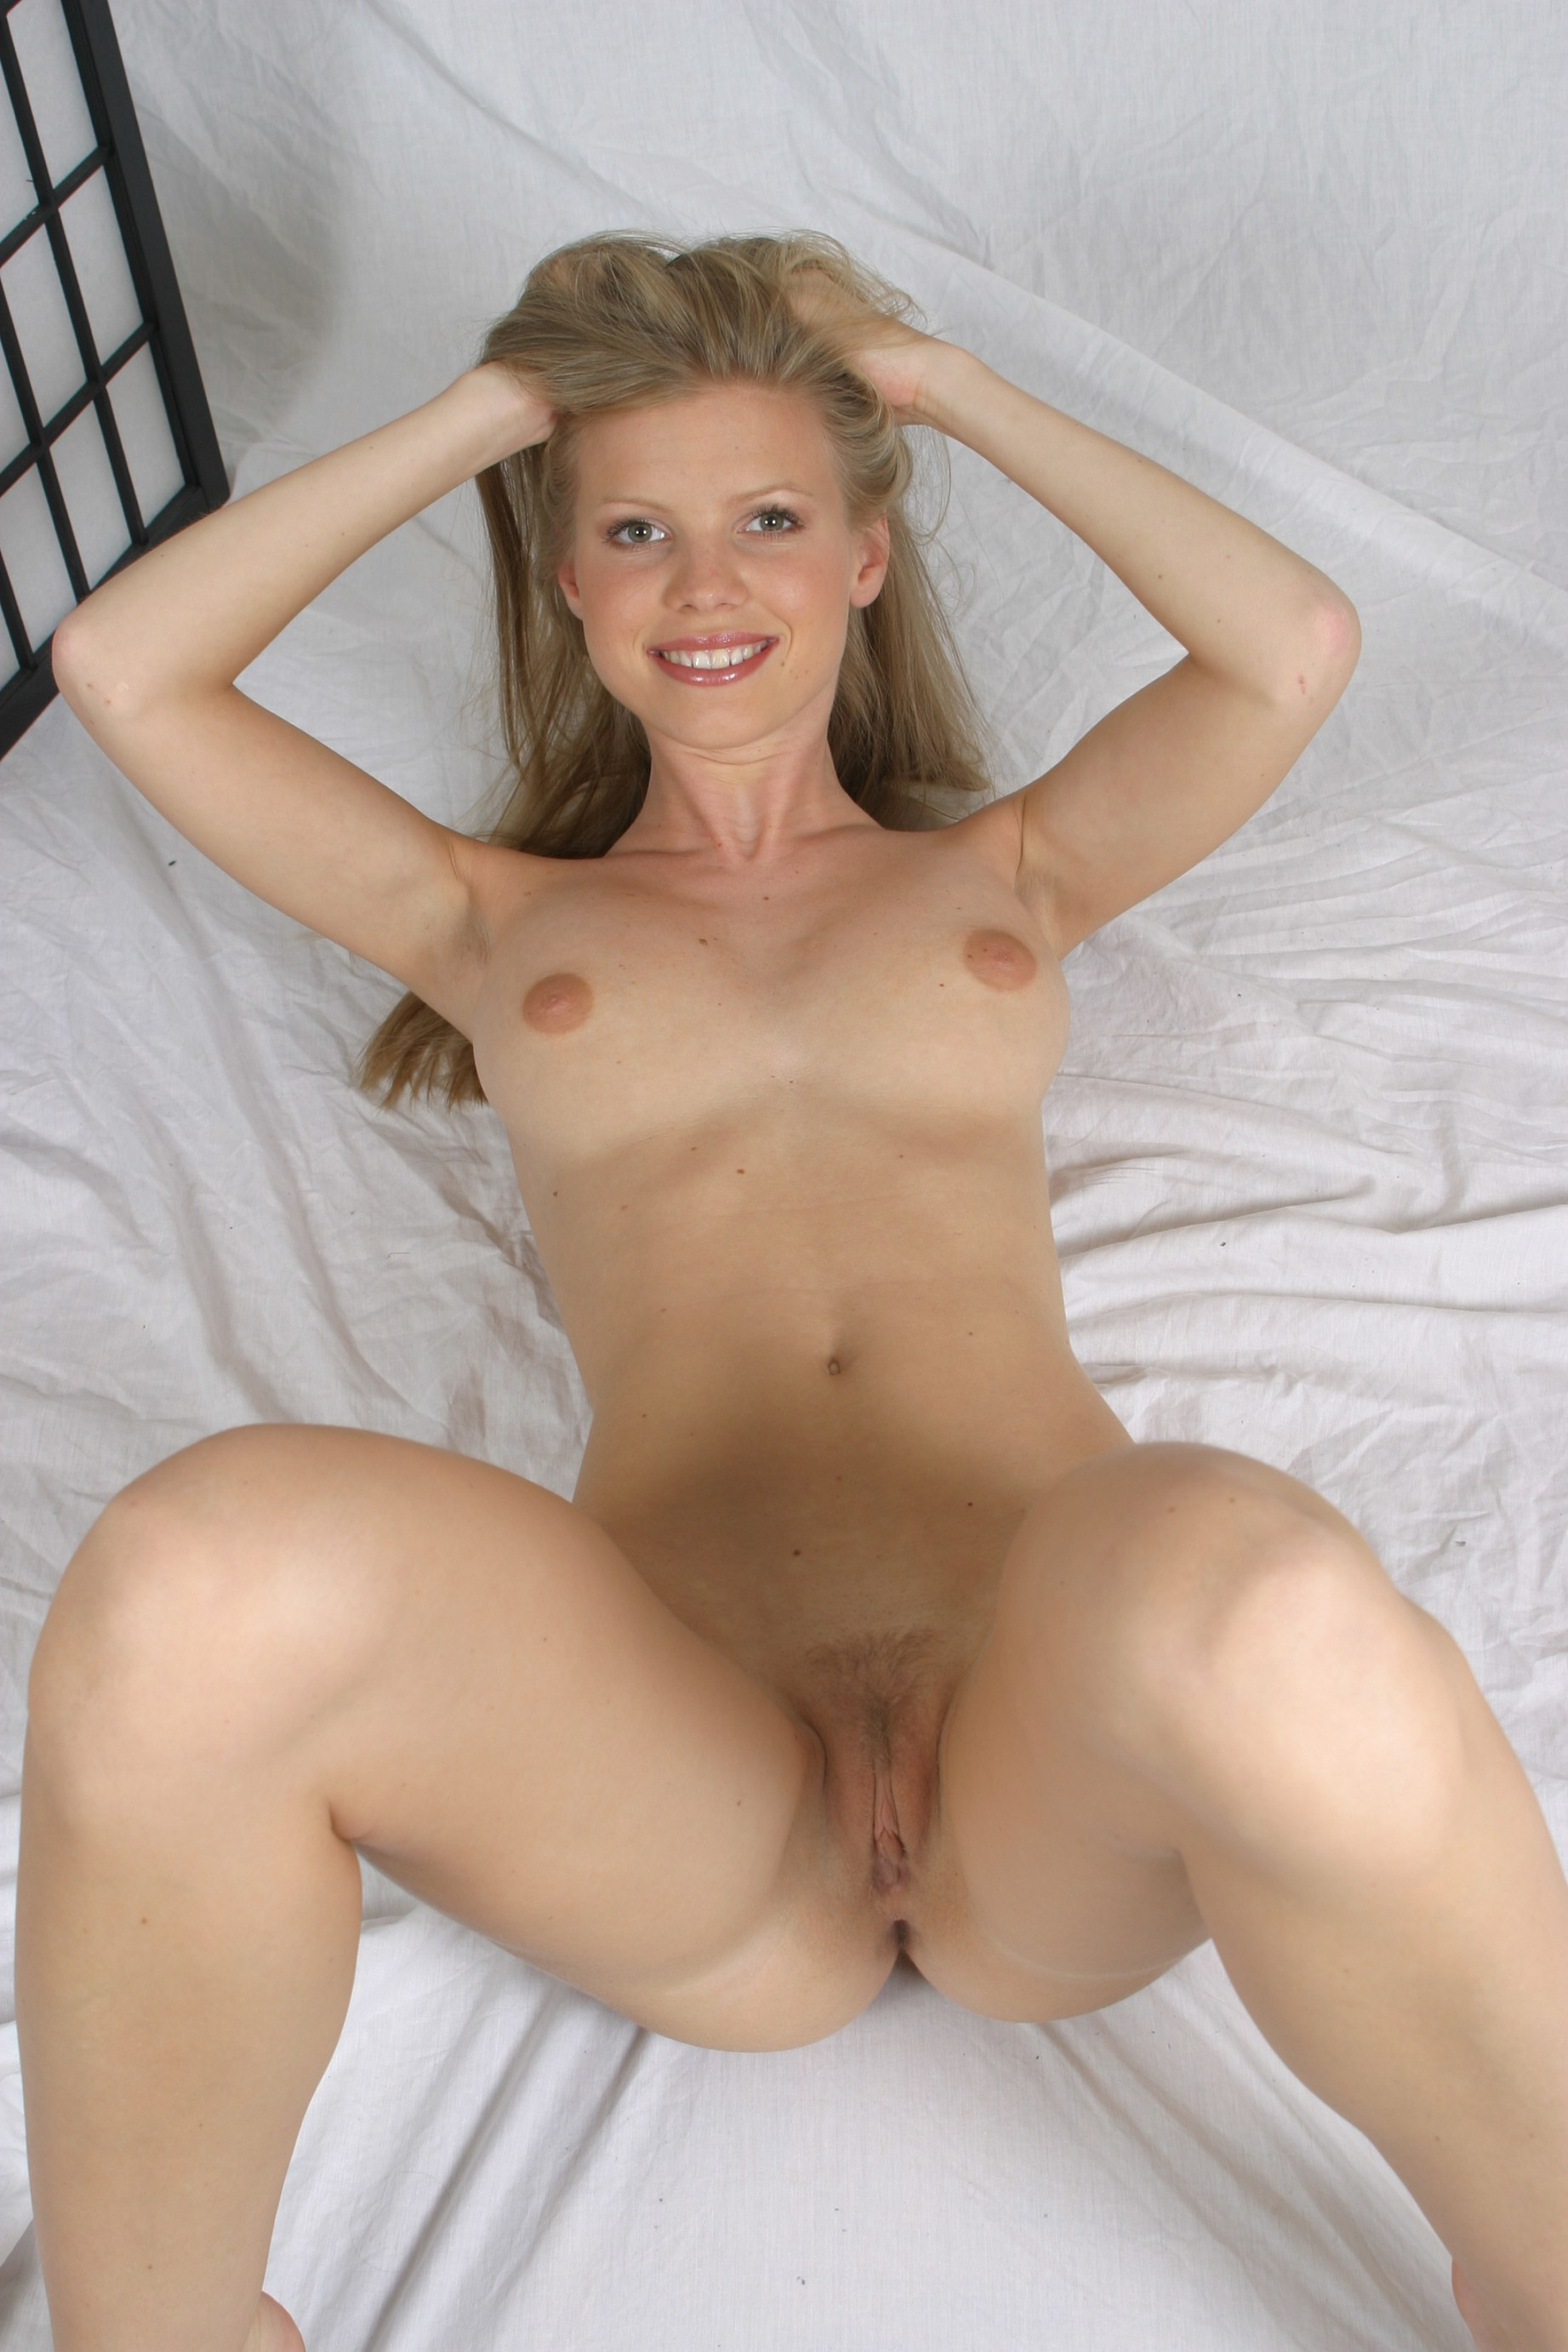 Beautiful blonde with nice rack uses dildo in bedroom 6